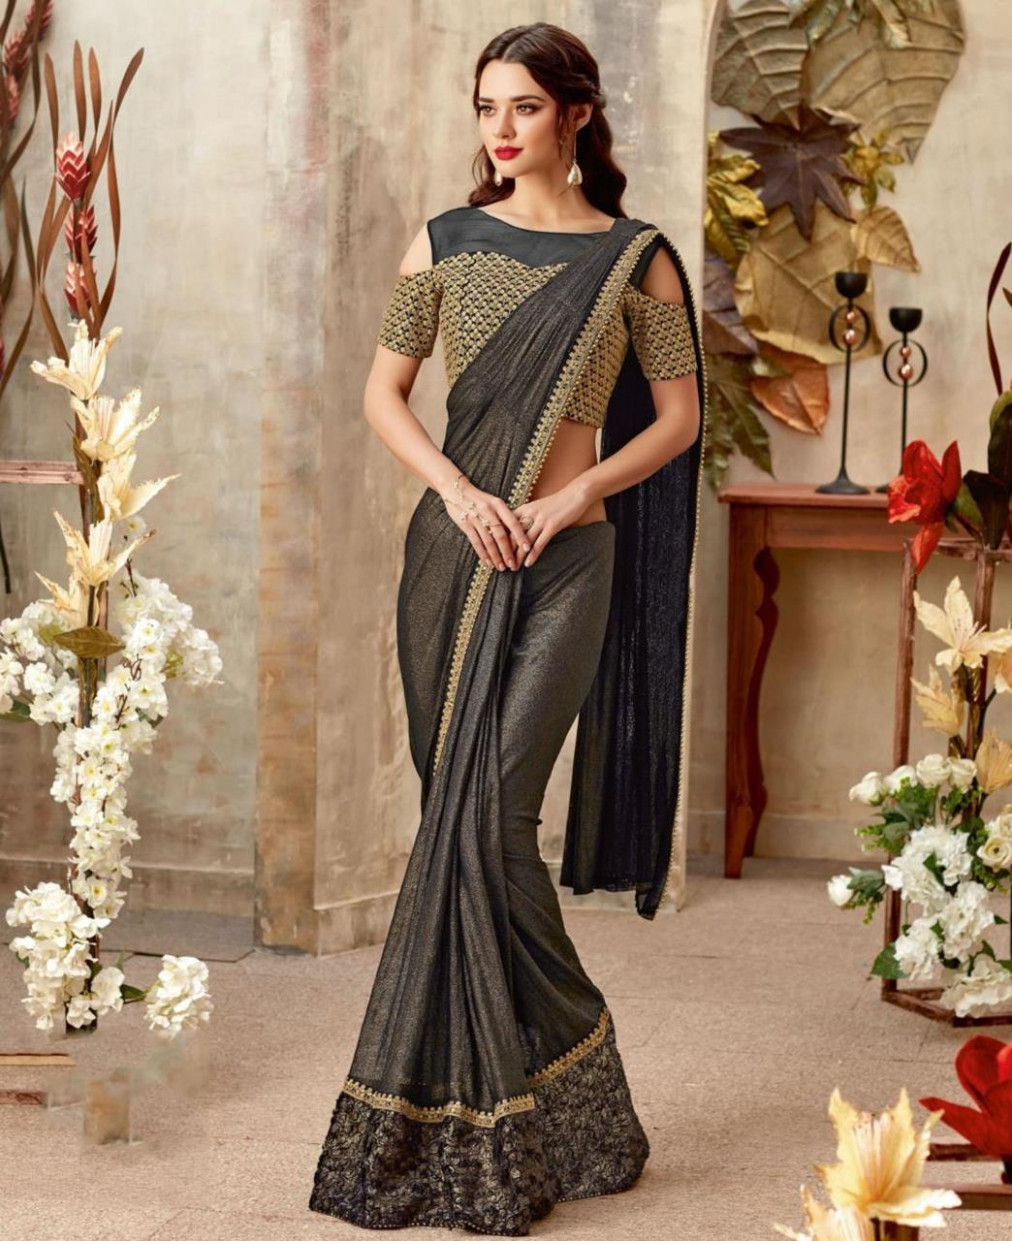 Buy Comely Black Party Wear Saree [162210] at £47.69